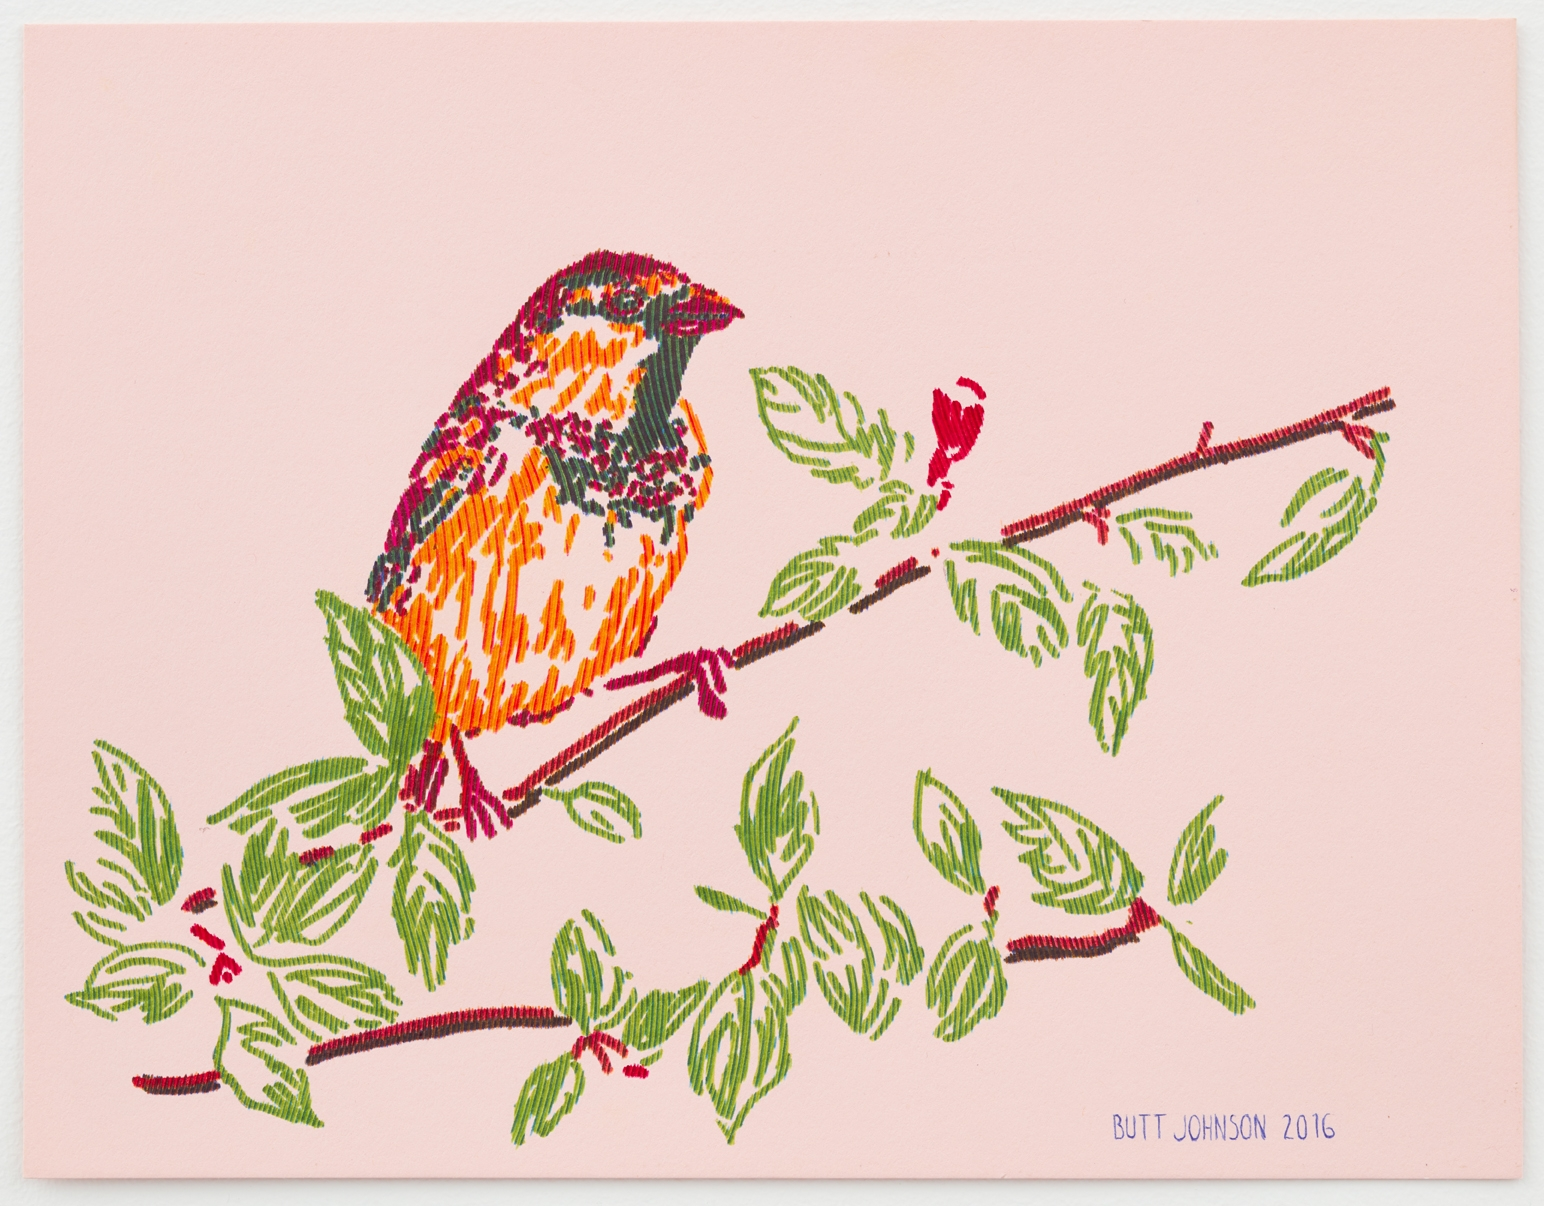 Untitled (Sparrow)